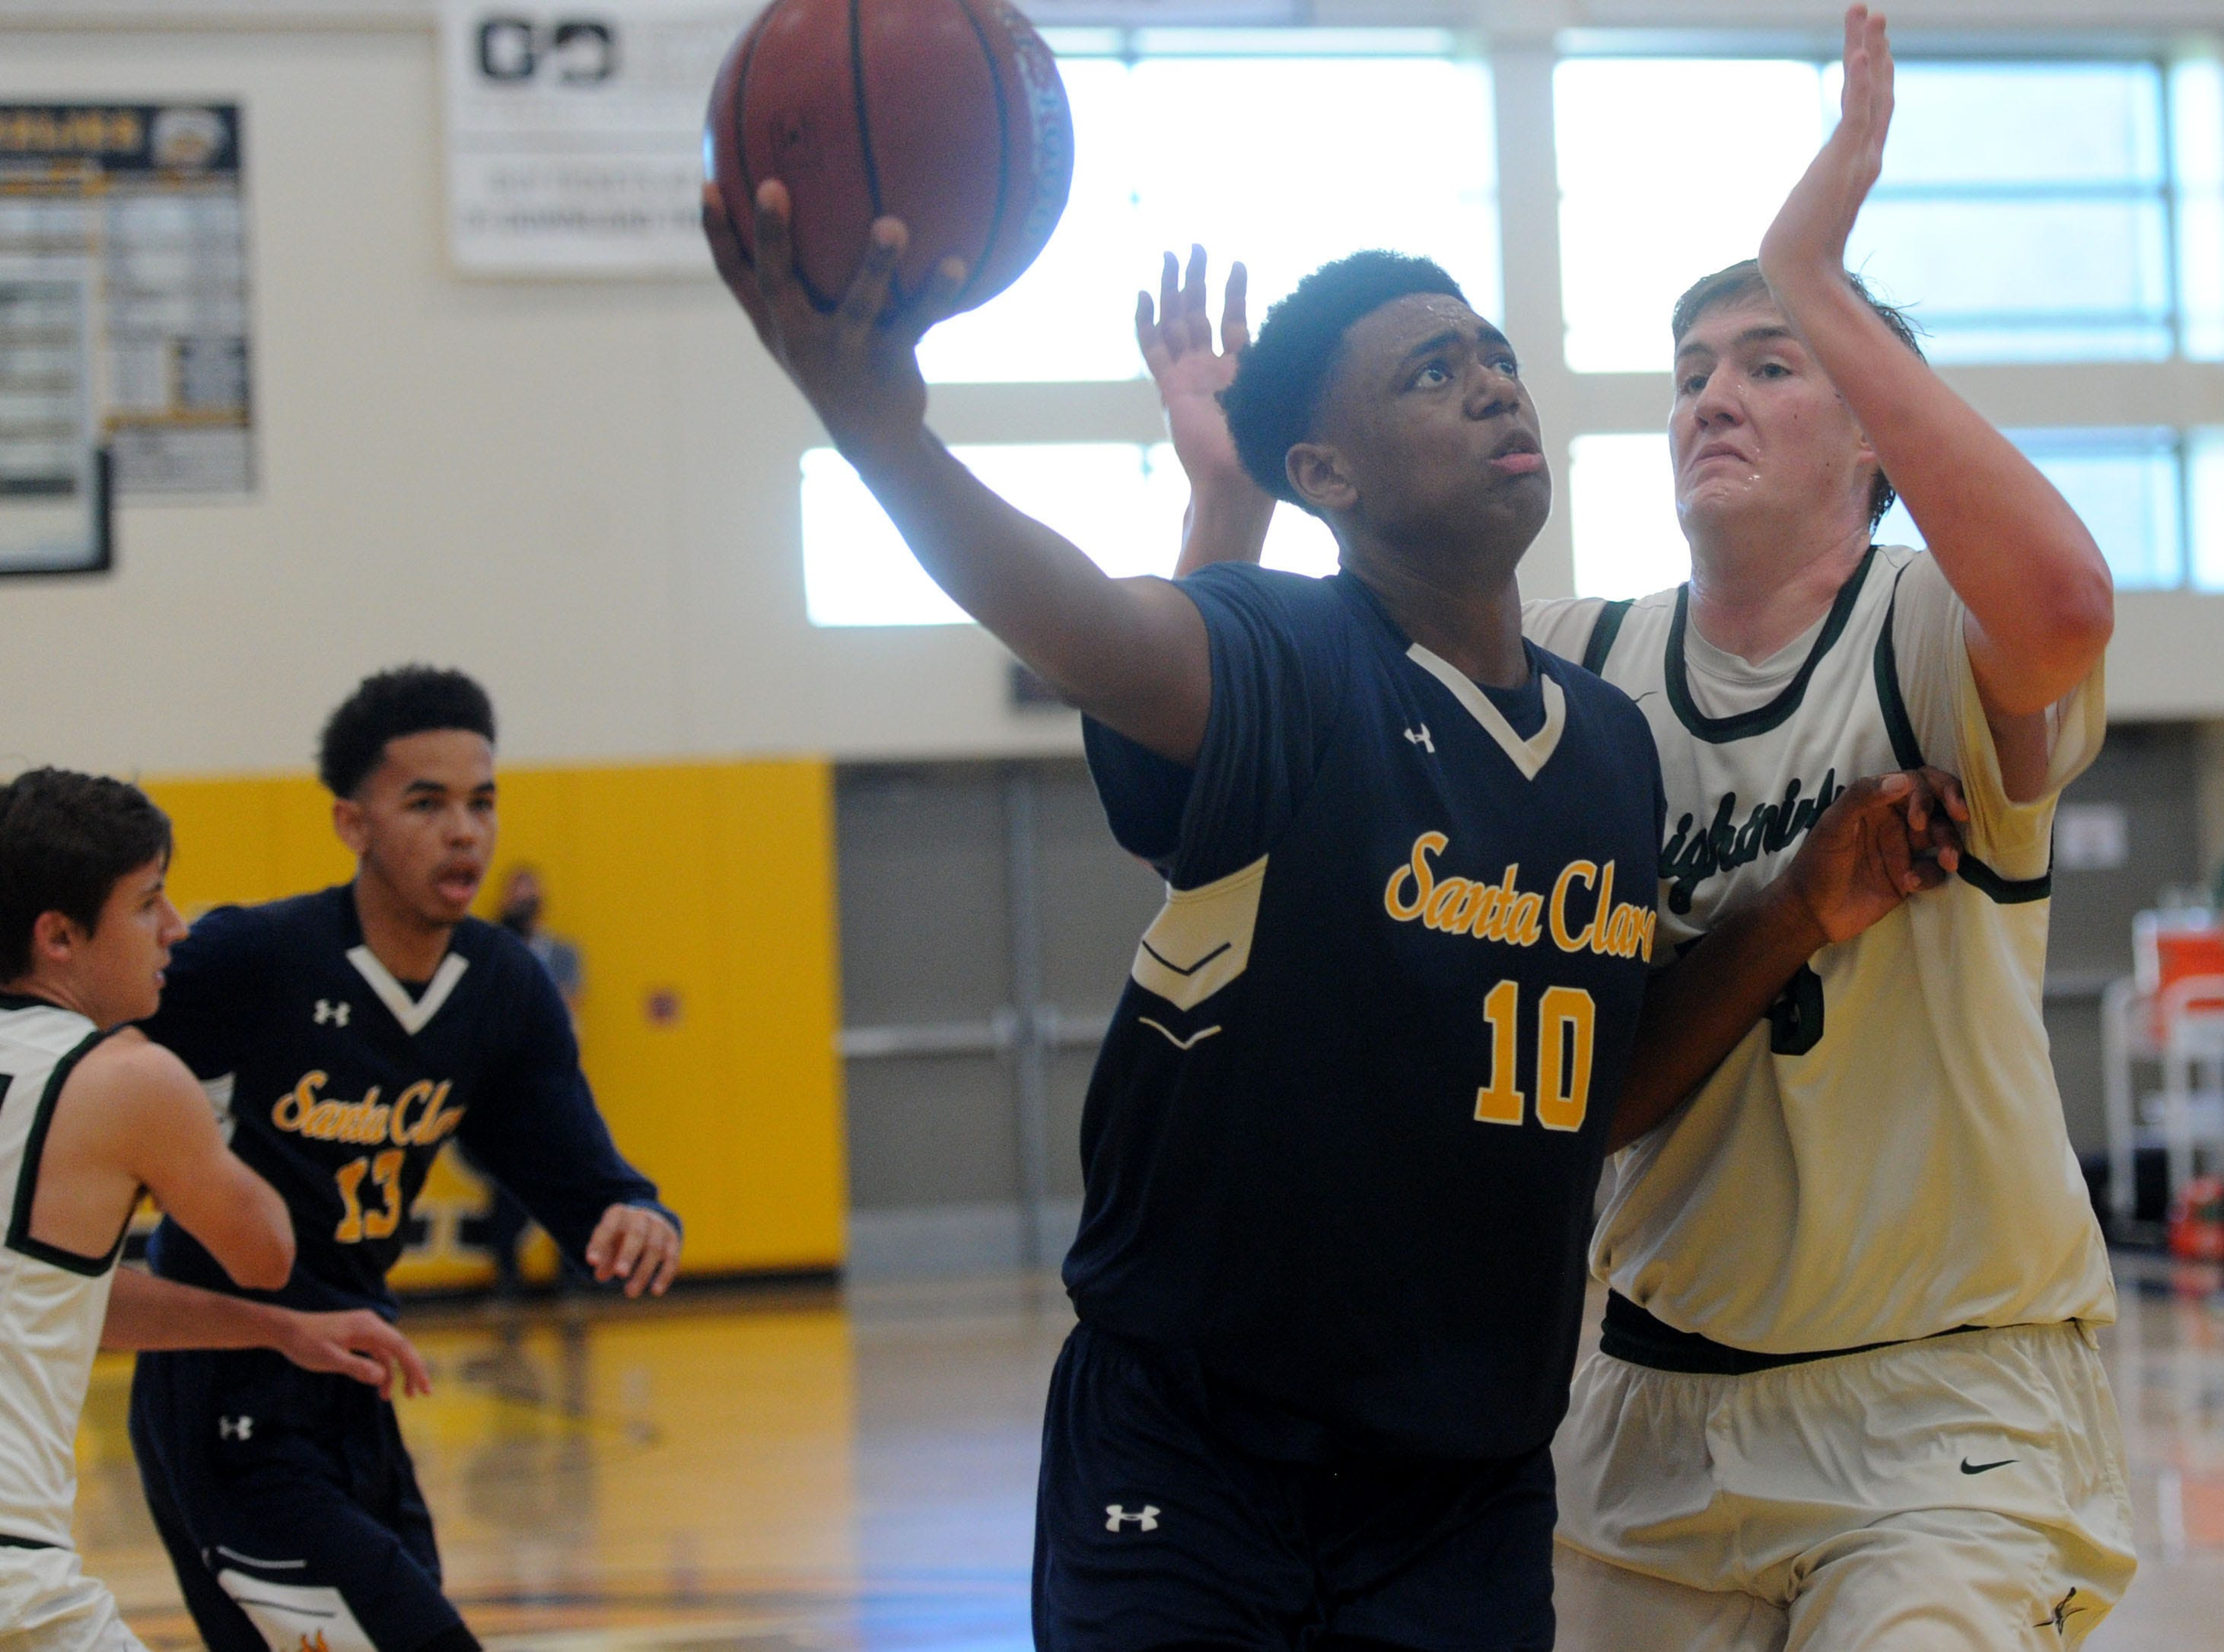 Santa Clara High's Christian Oliver slips past Johnny King of Sage Hill during the CIF-SS Division 5AA boys basketball final Saturday at Godinez High in Santa Ana. The Saints won 68-52.